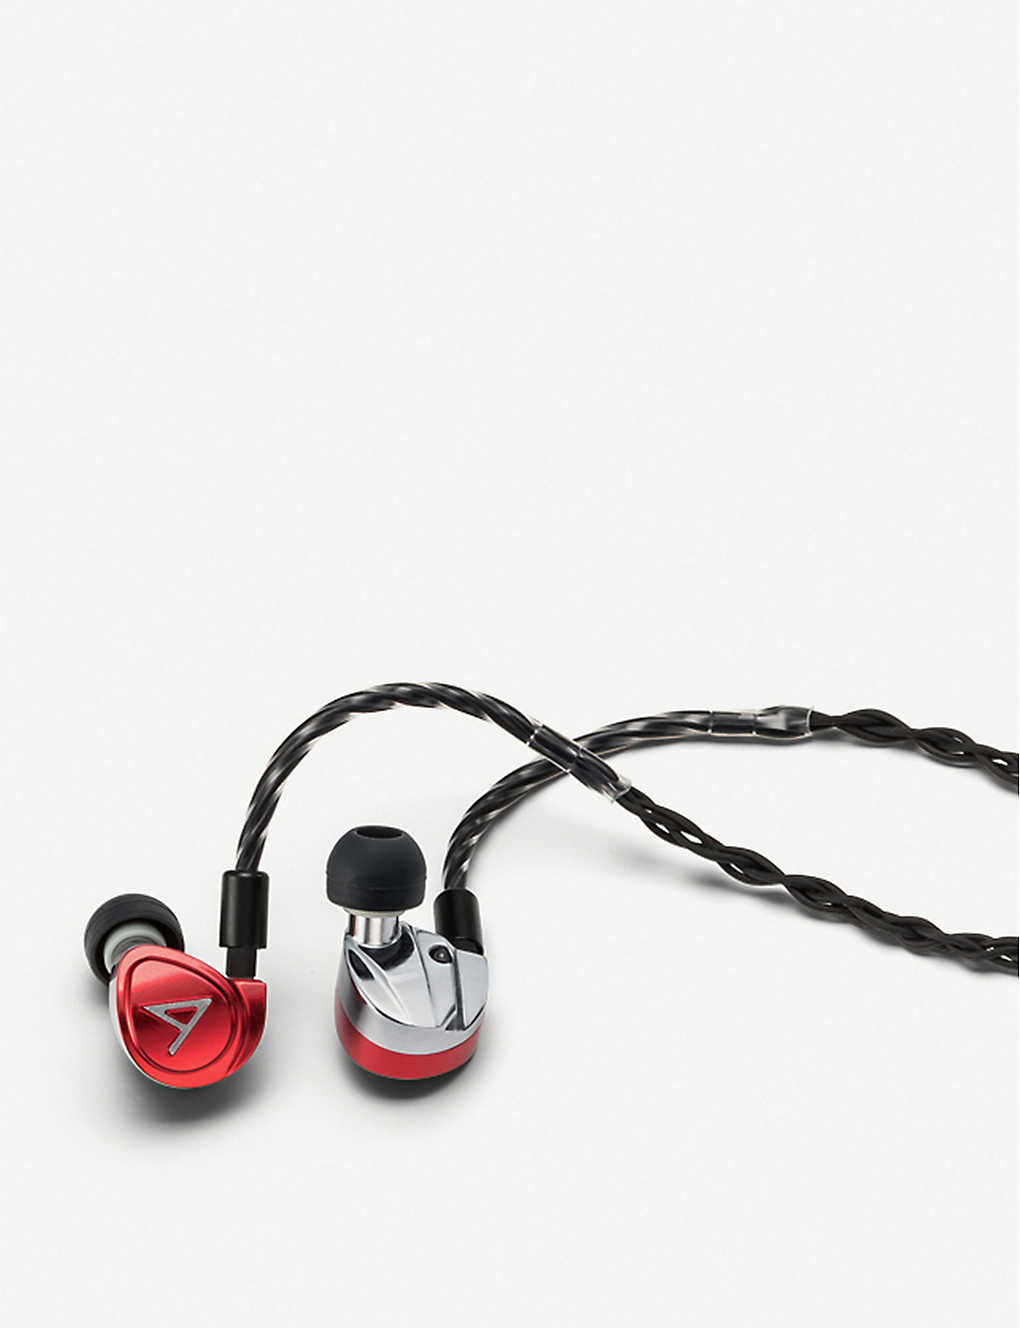 ASTELL & KERN: Diana by JH Audio In-Ear Headphones